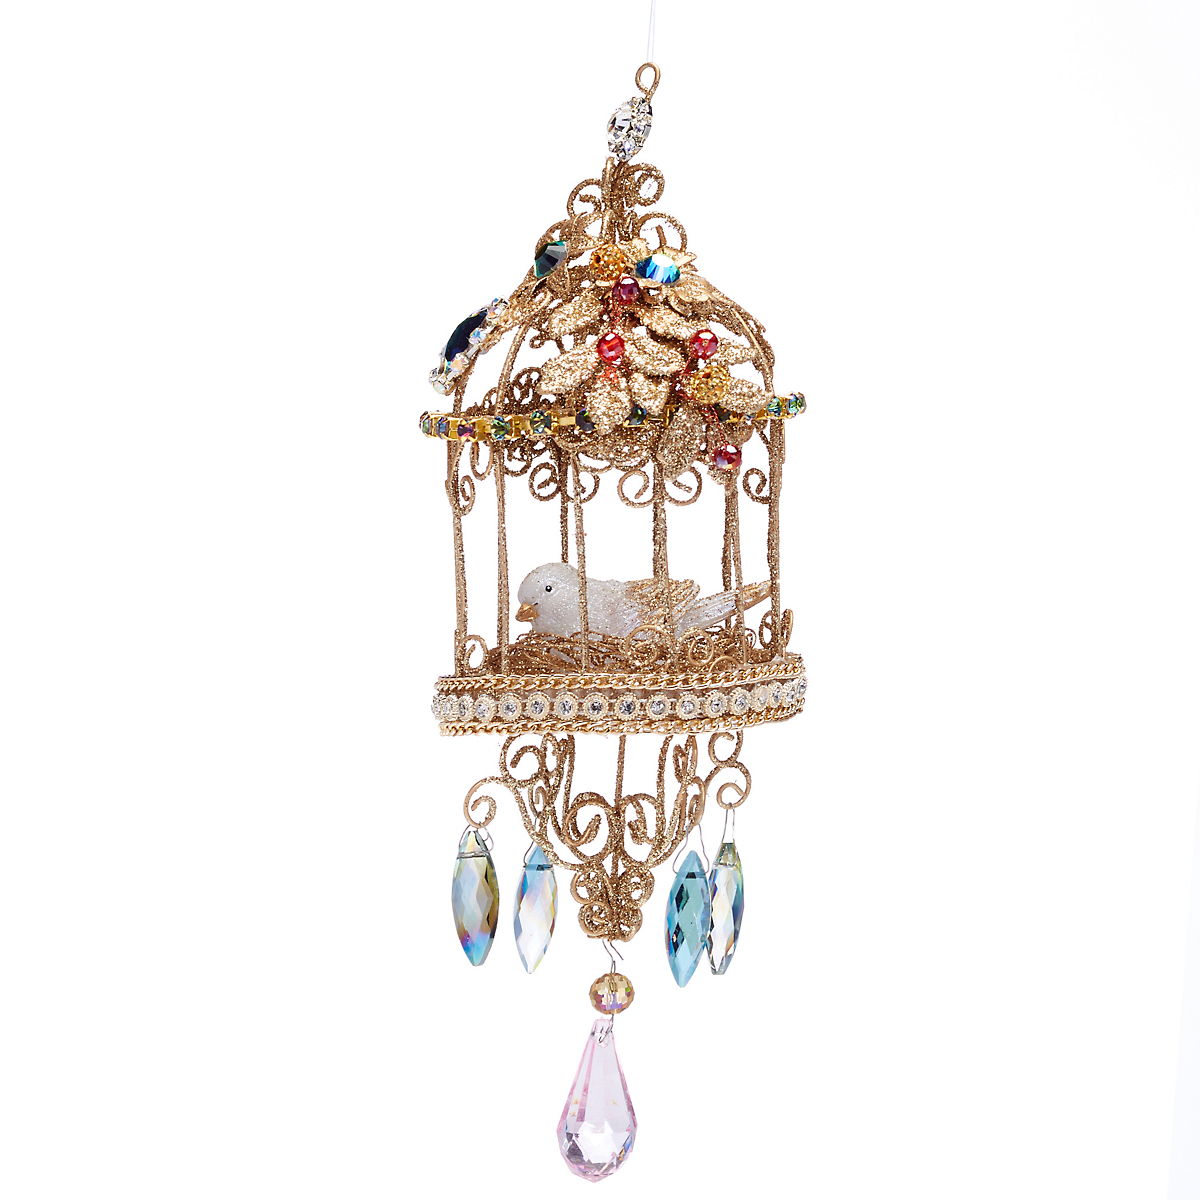 Bohemian Round Birdcage Ornament